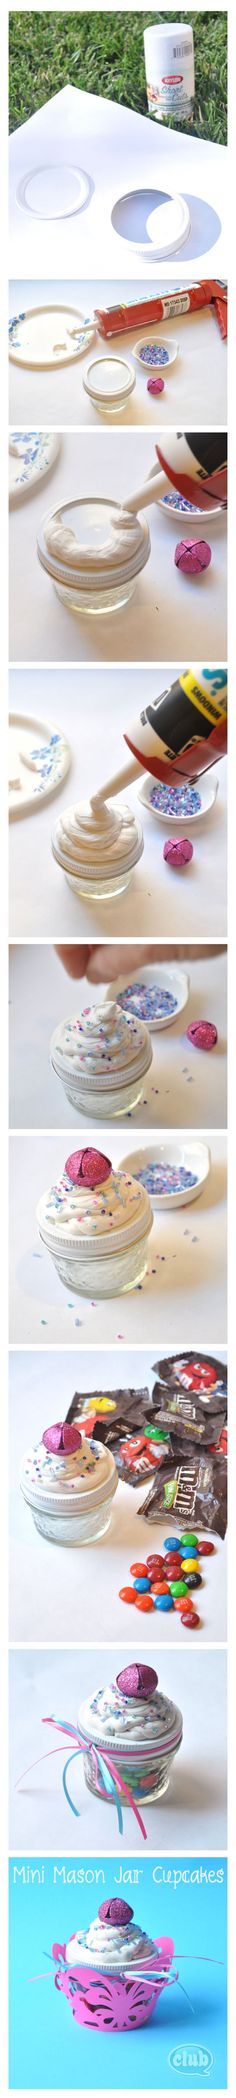 DIY mason jar #cupcakes! Cute idea :)